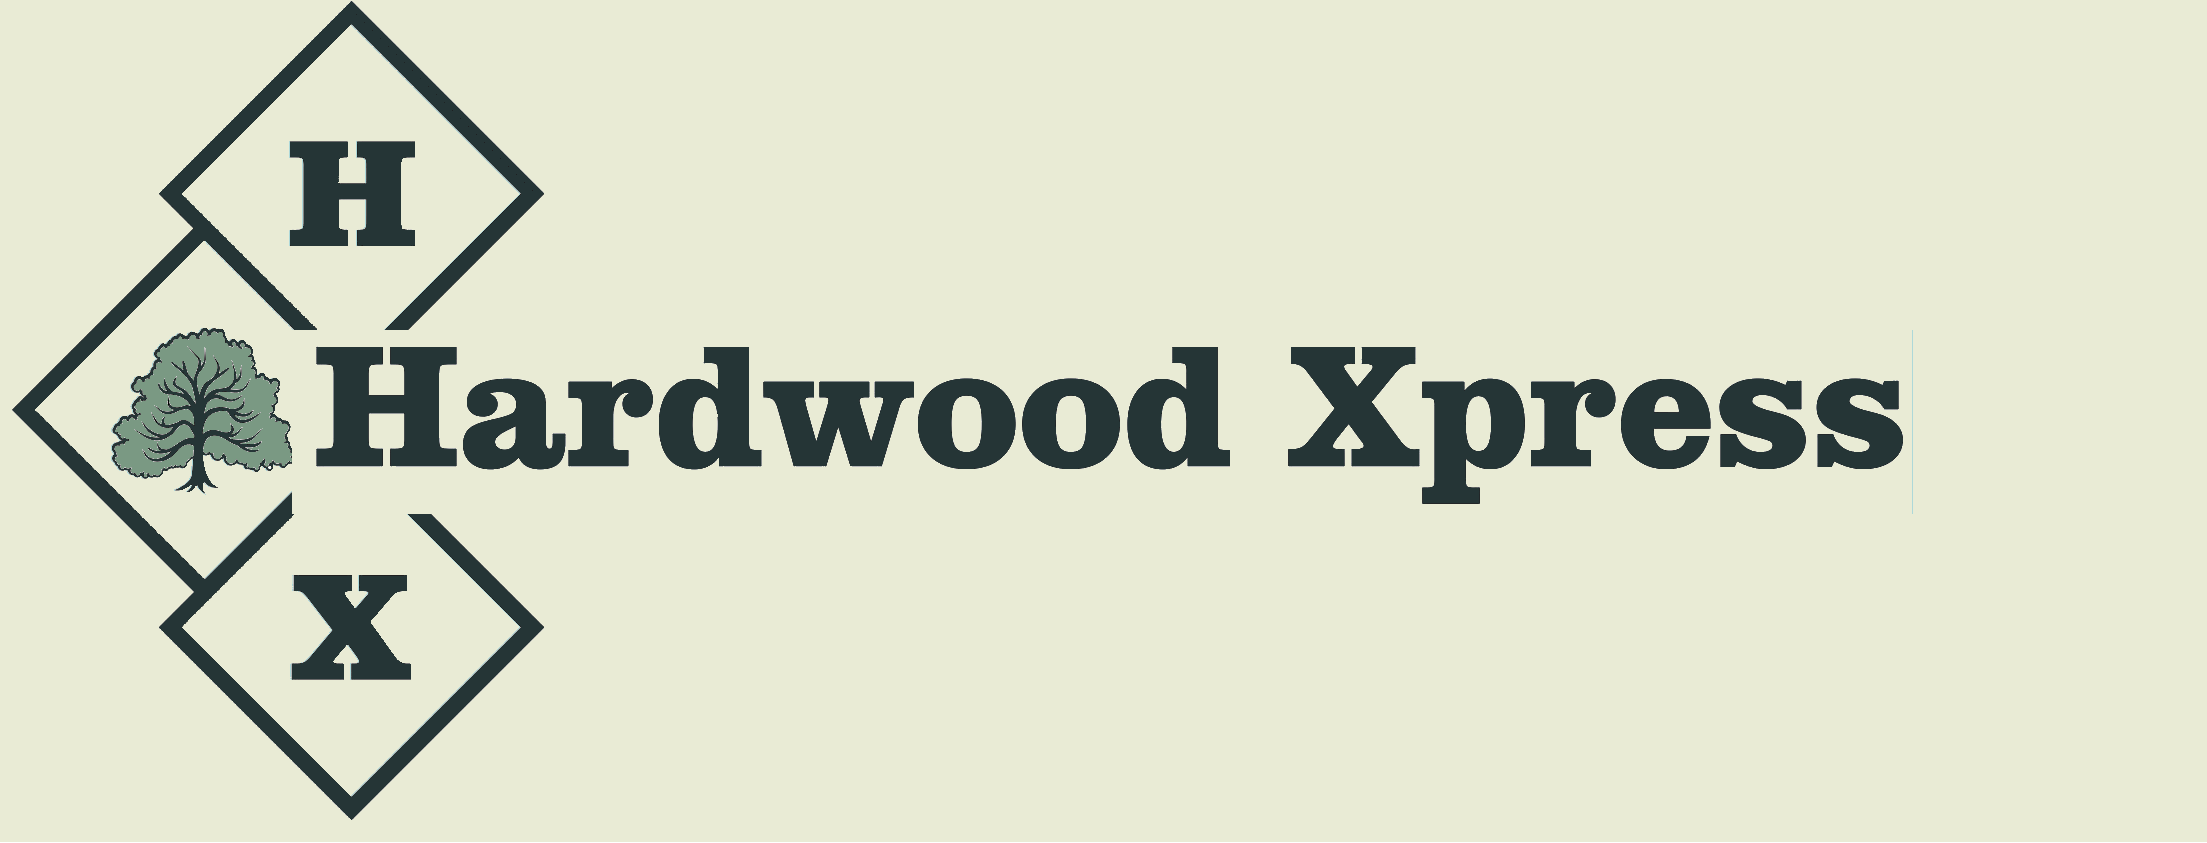 Hardwood Xpress